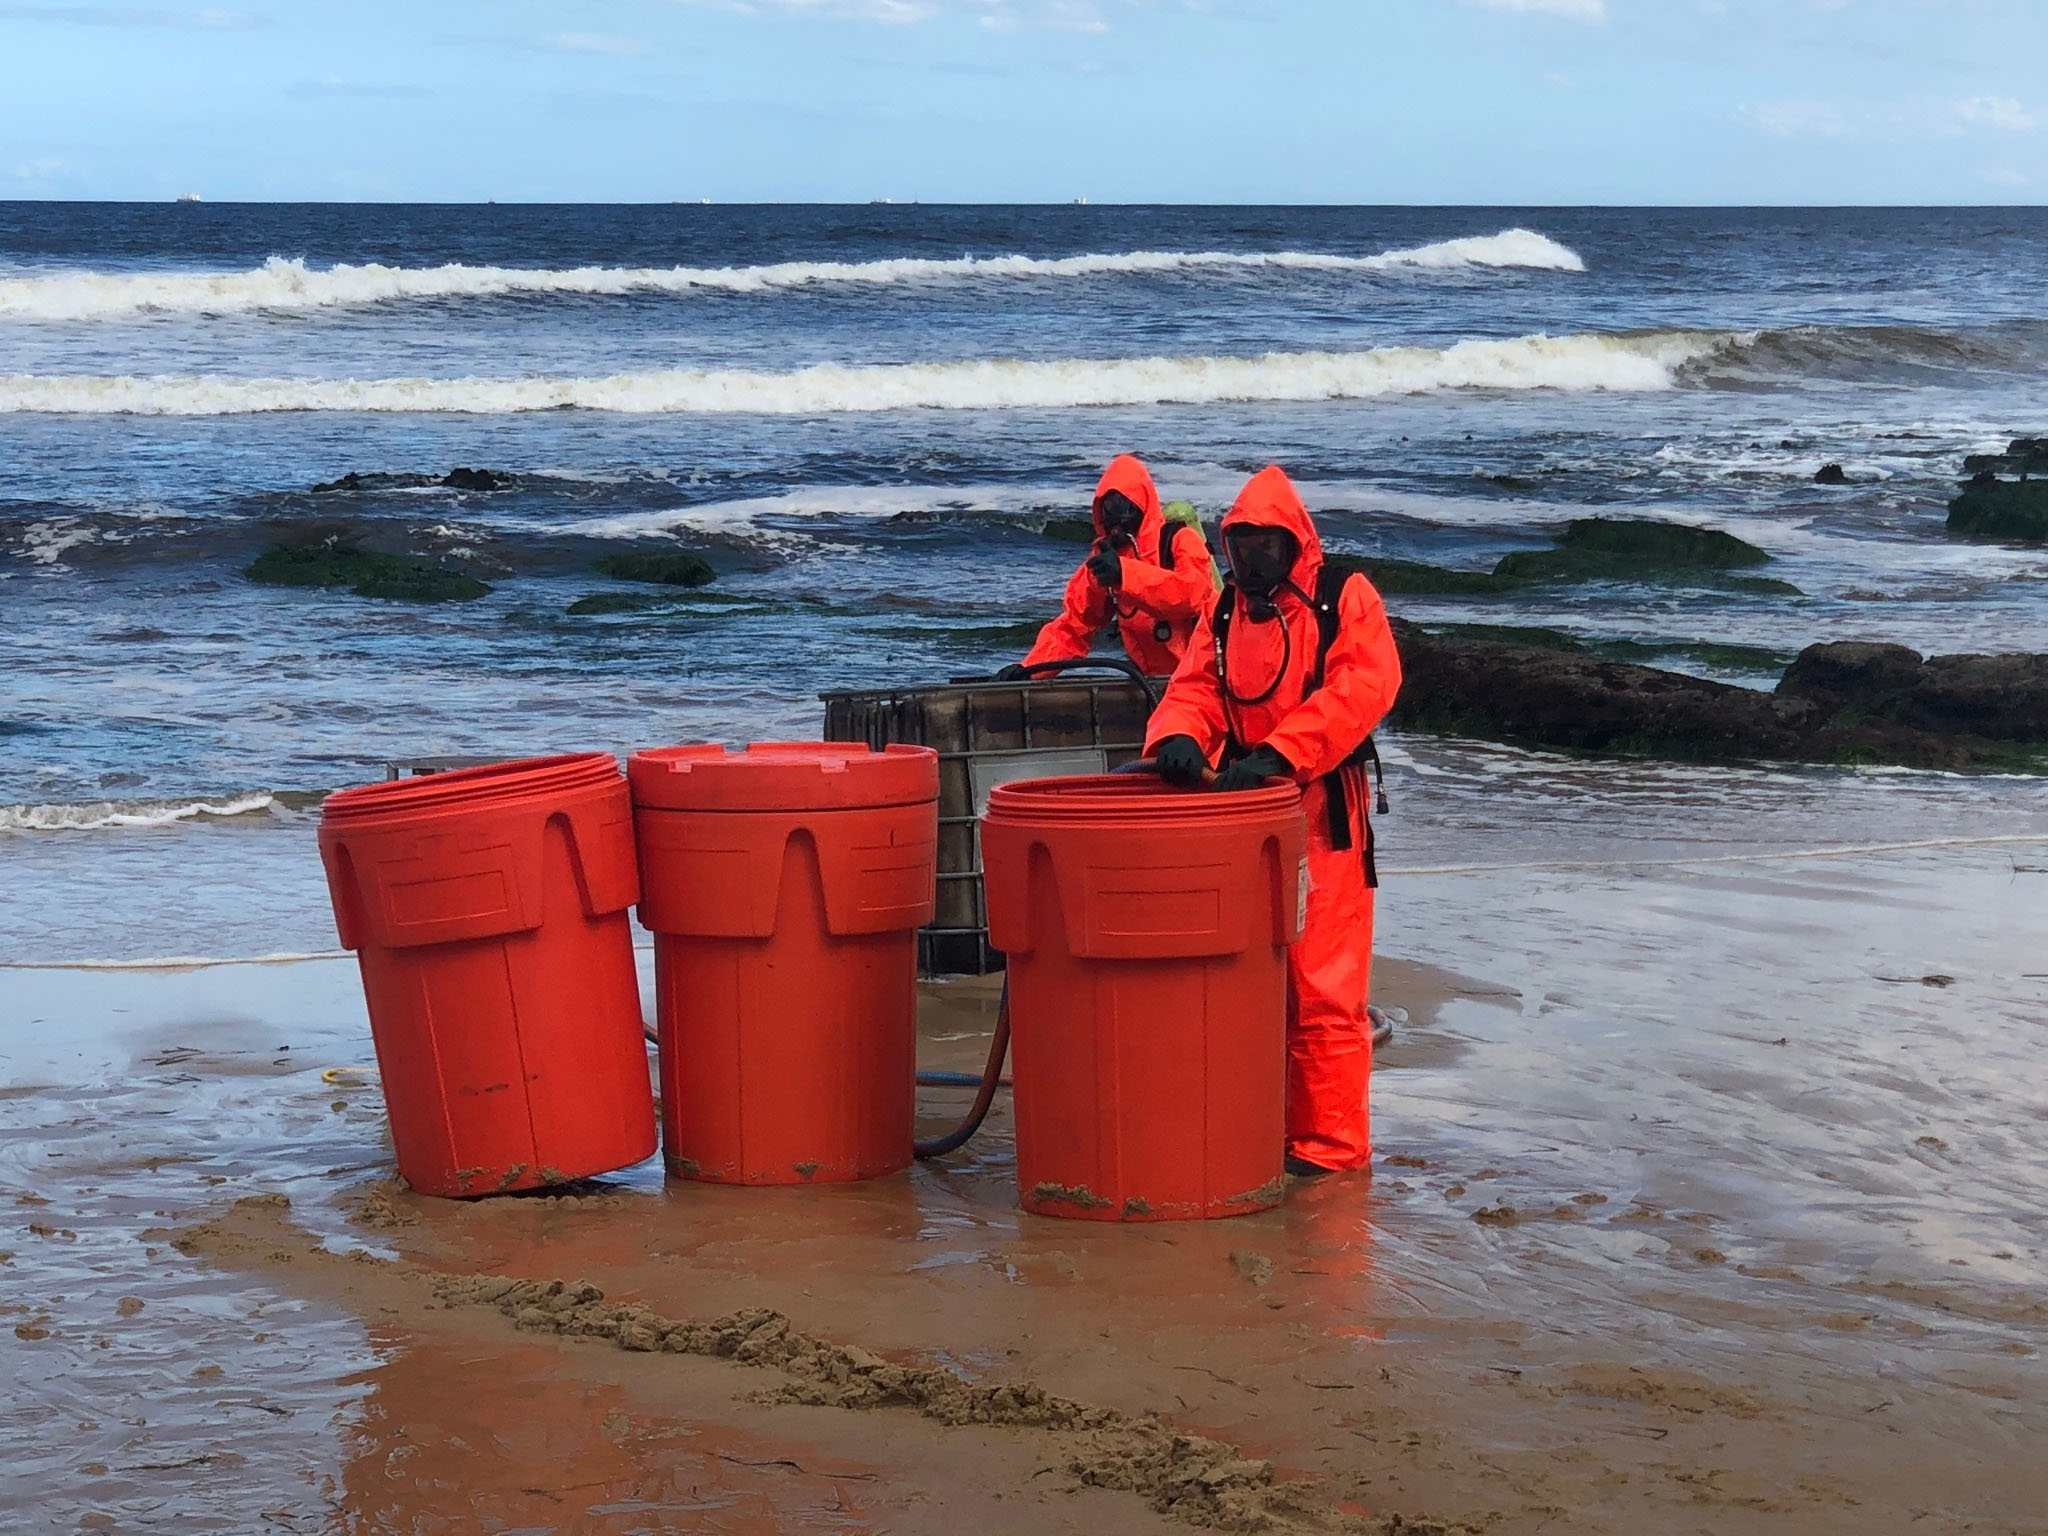 Mysterious drum containing acid forces evacuation of NSW beach